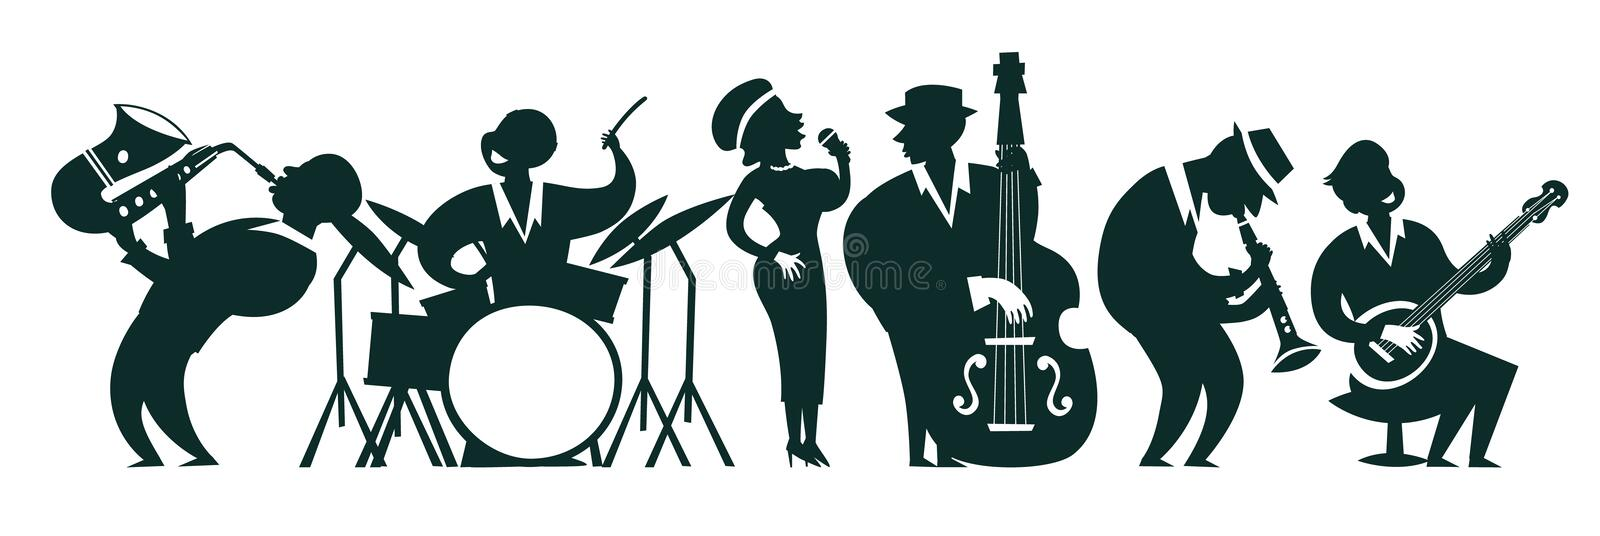 Les silhouettes de jazz-band dirigent l'illustration colorée illustration libre de droits